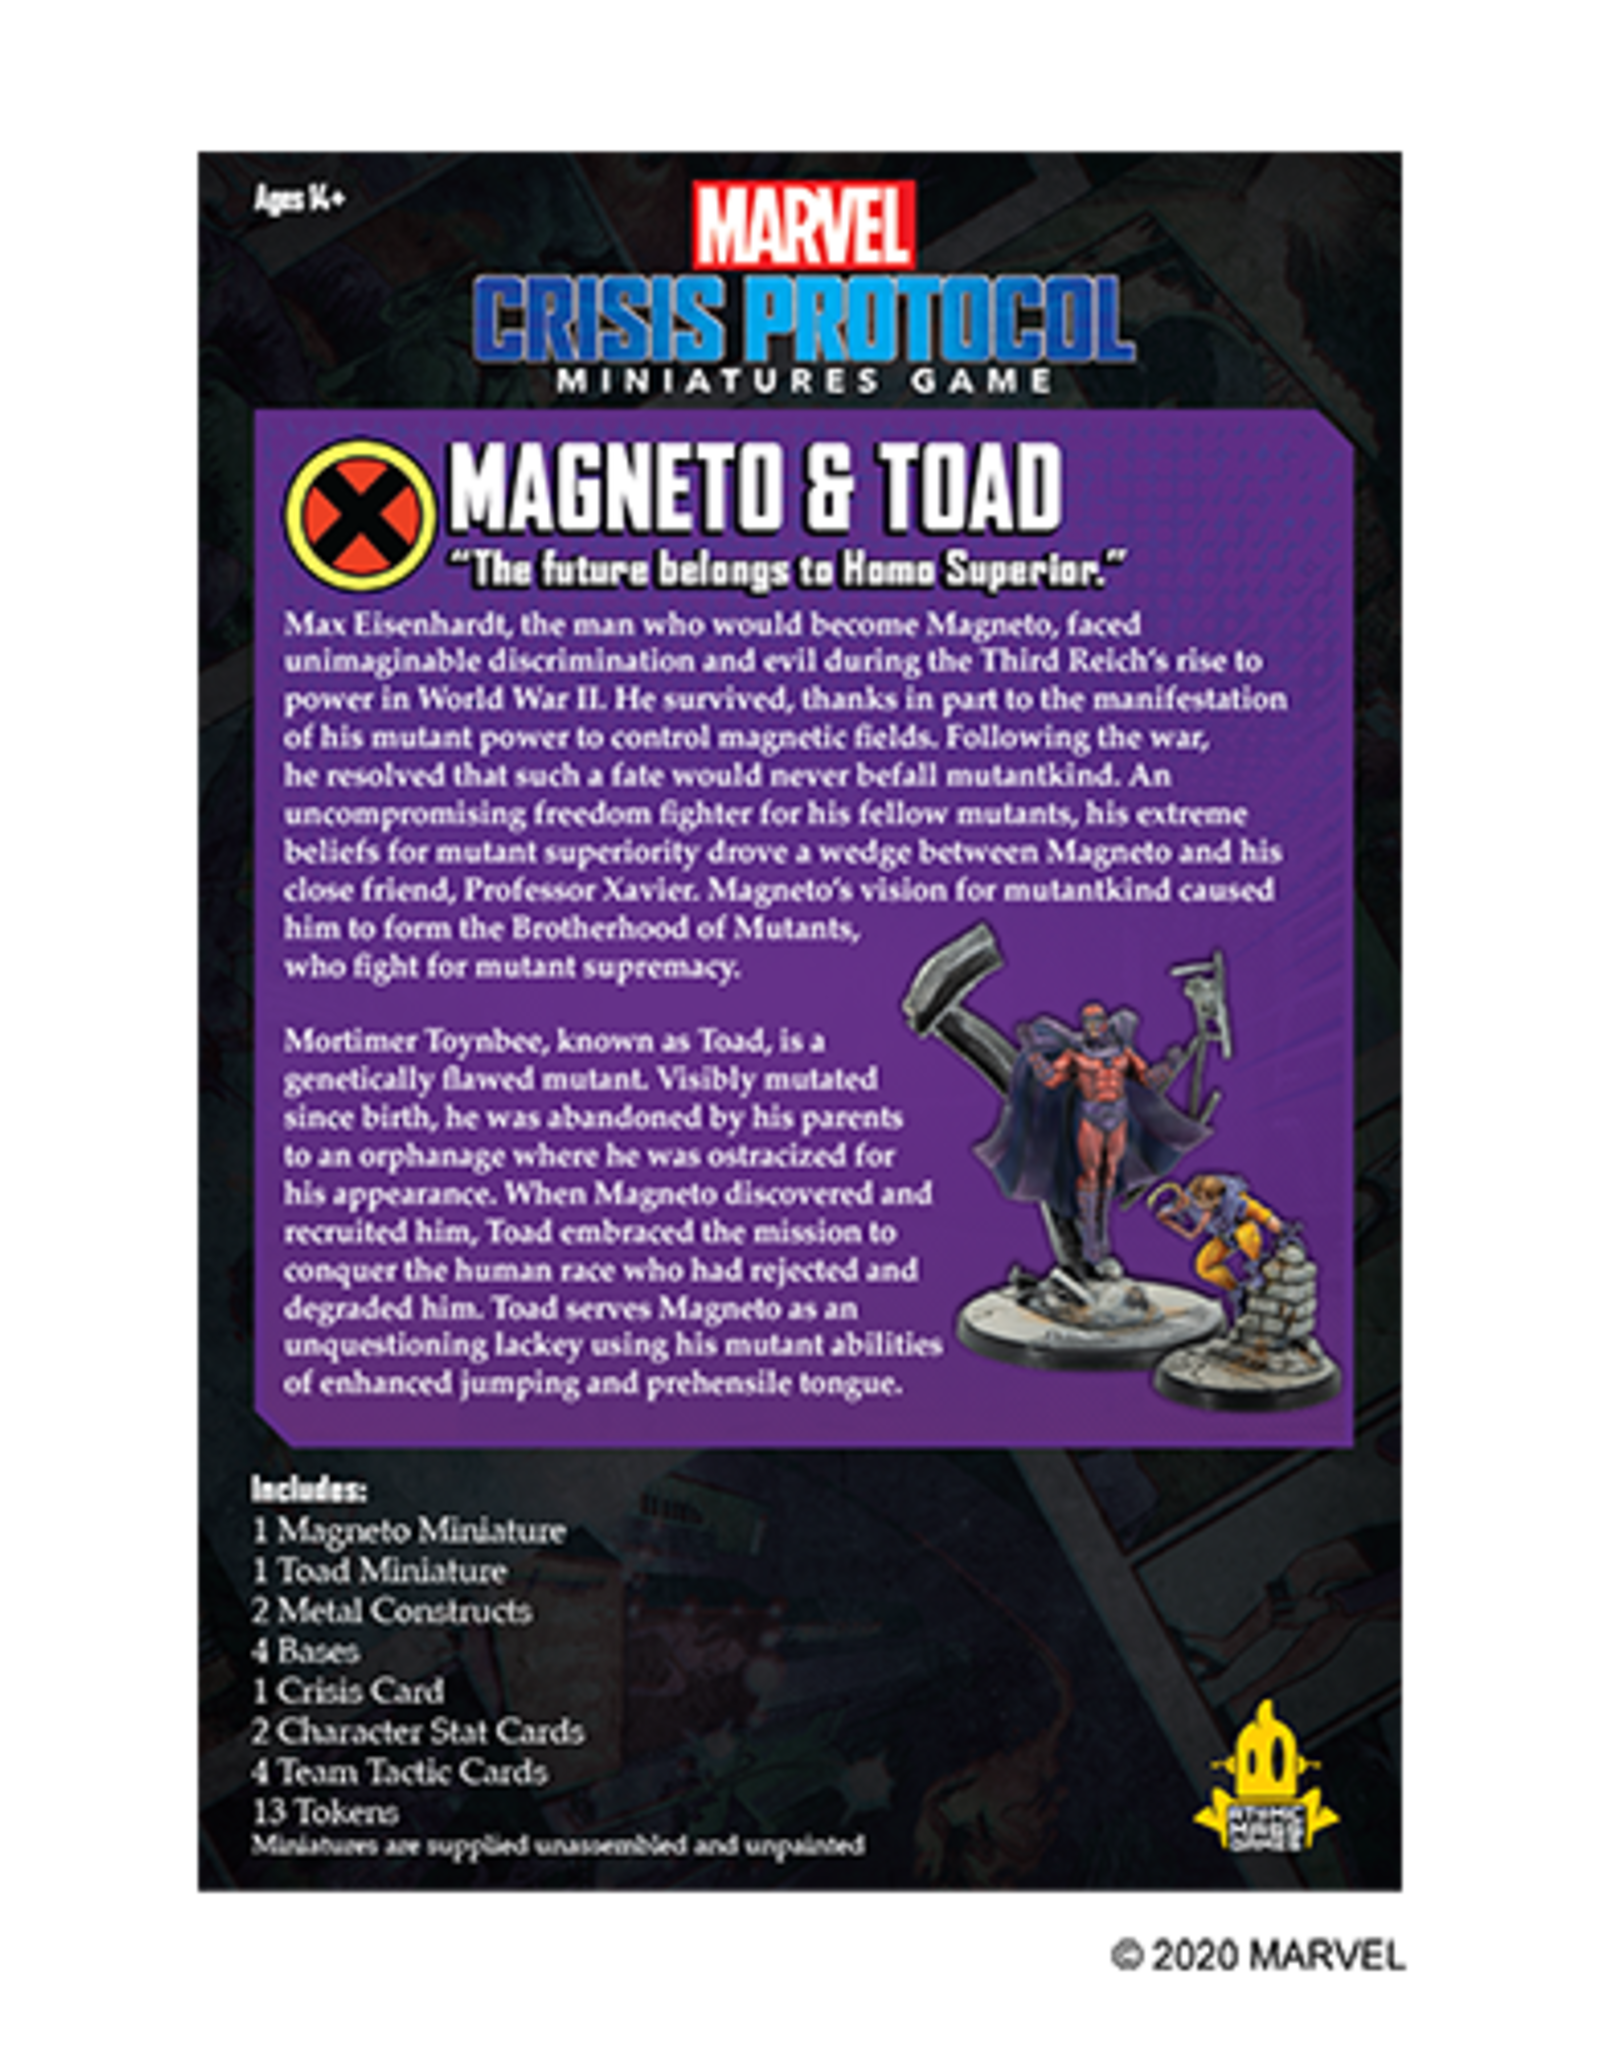 Atomic Mass Marvel Crisis Protocol: Magneto and Toad